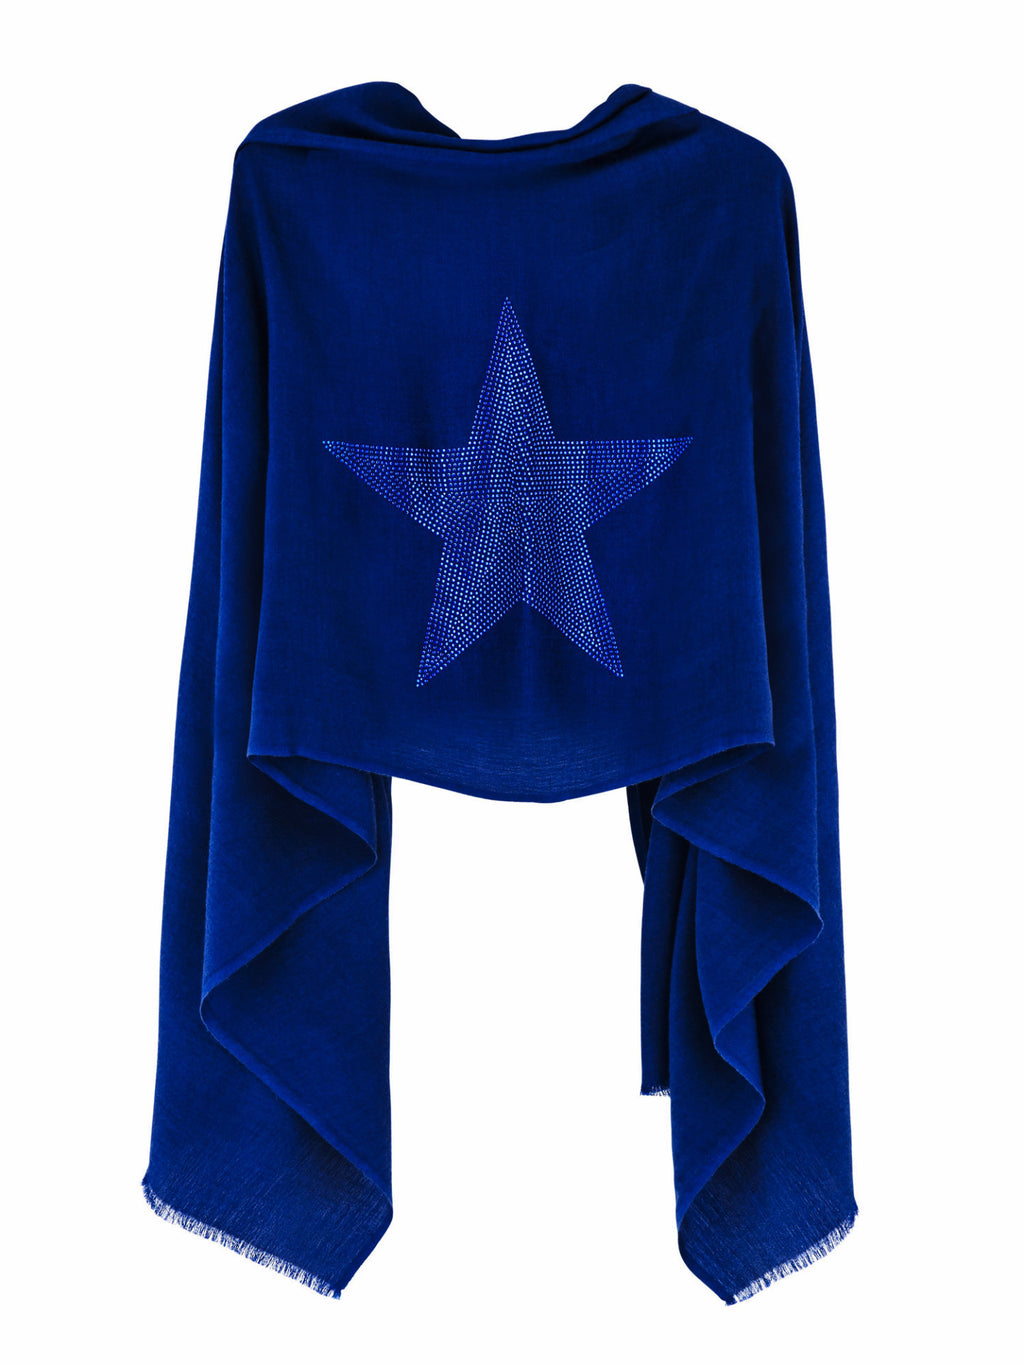 Crystal embellished cashmere pashmina shawl, blue with star